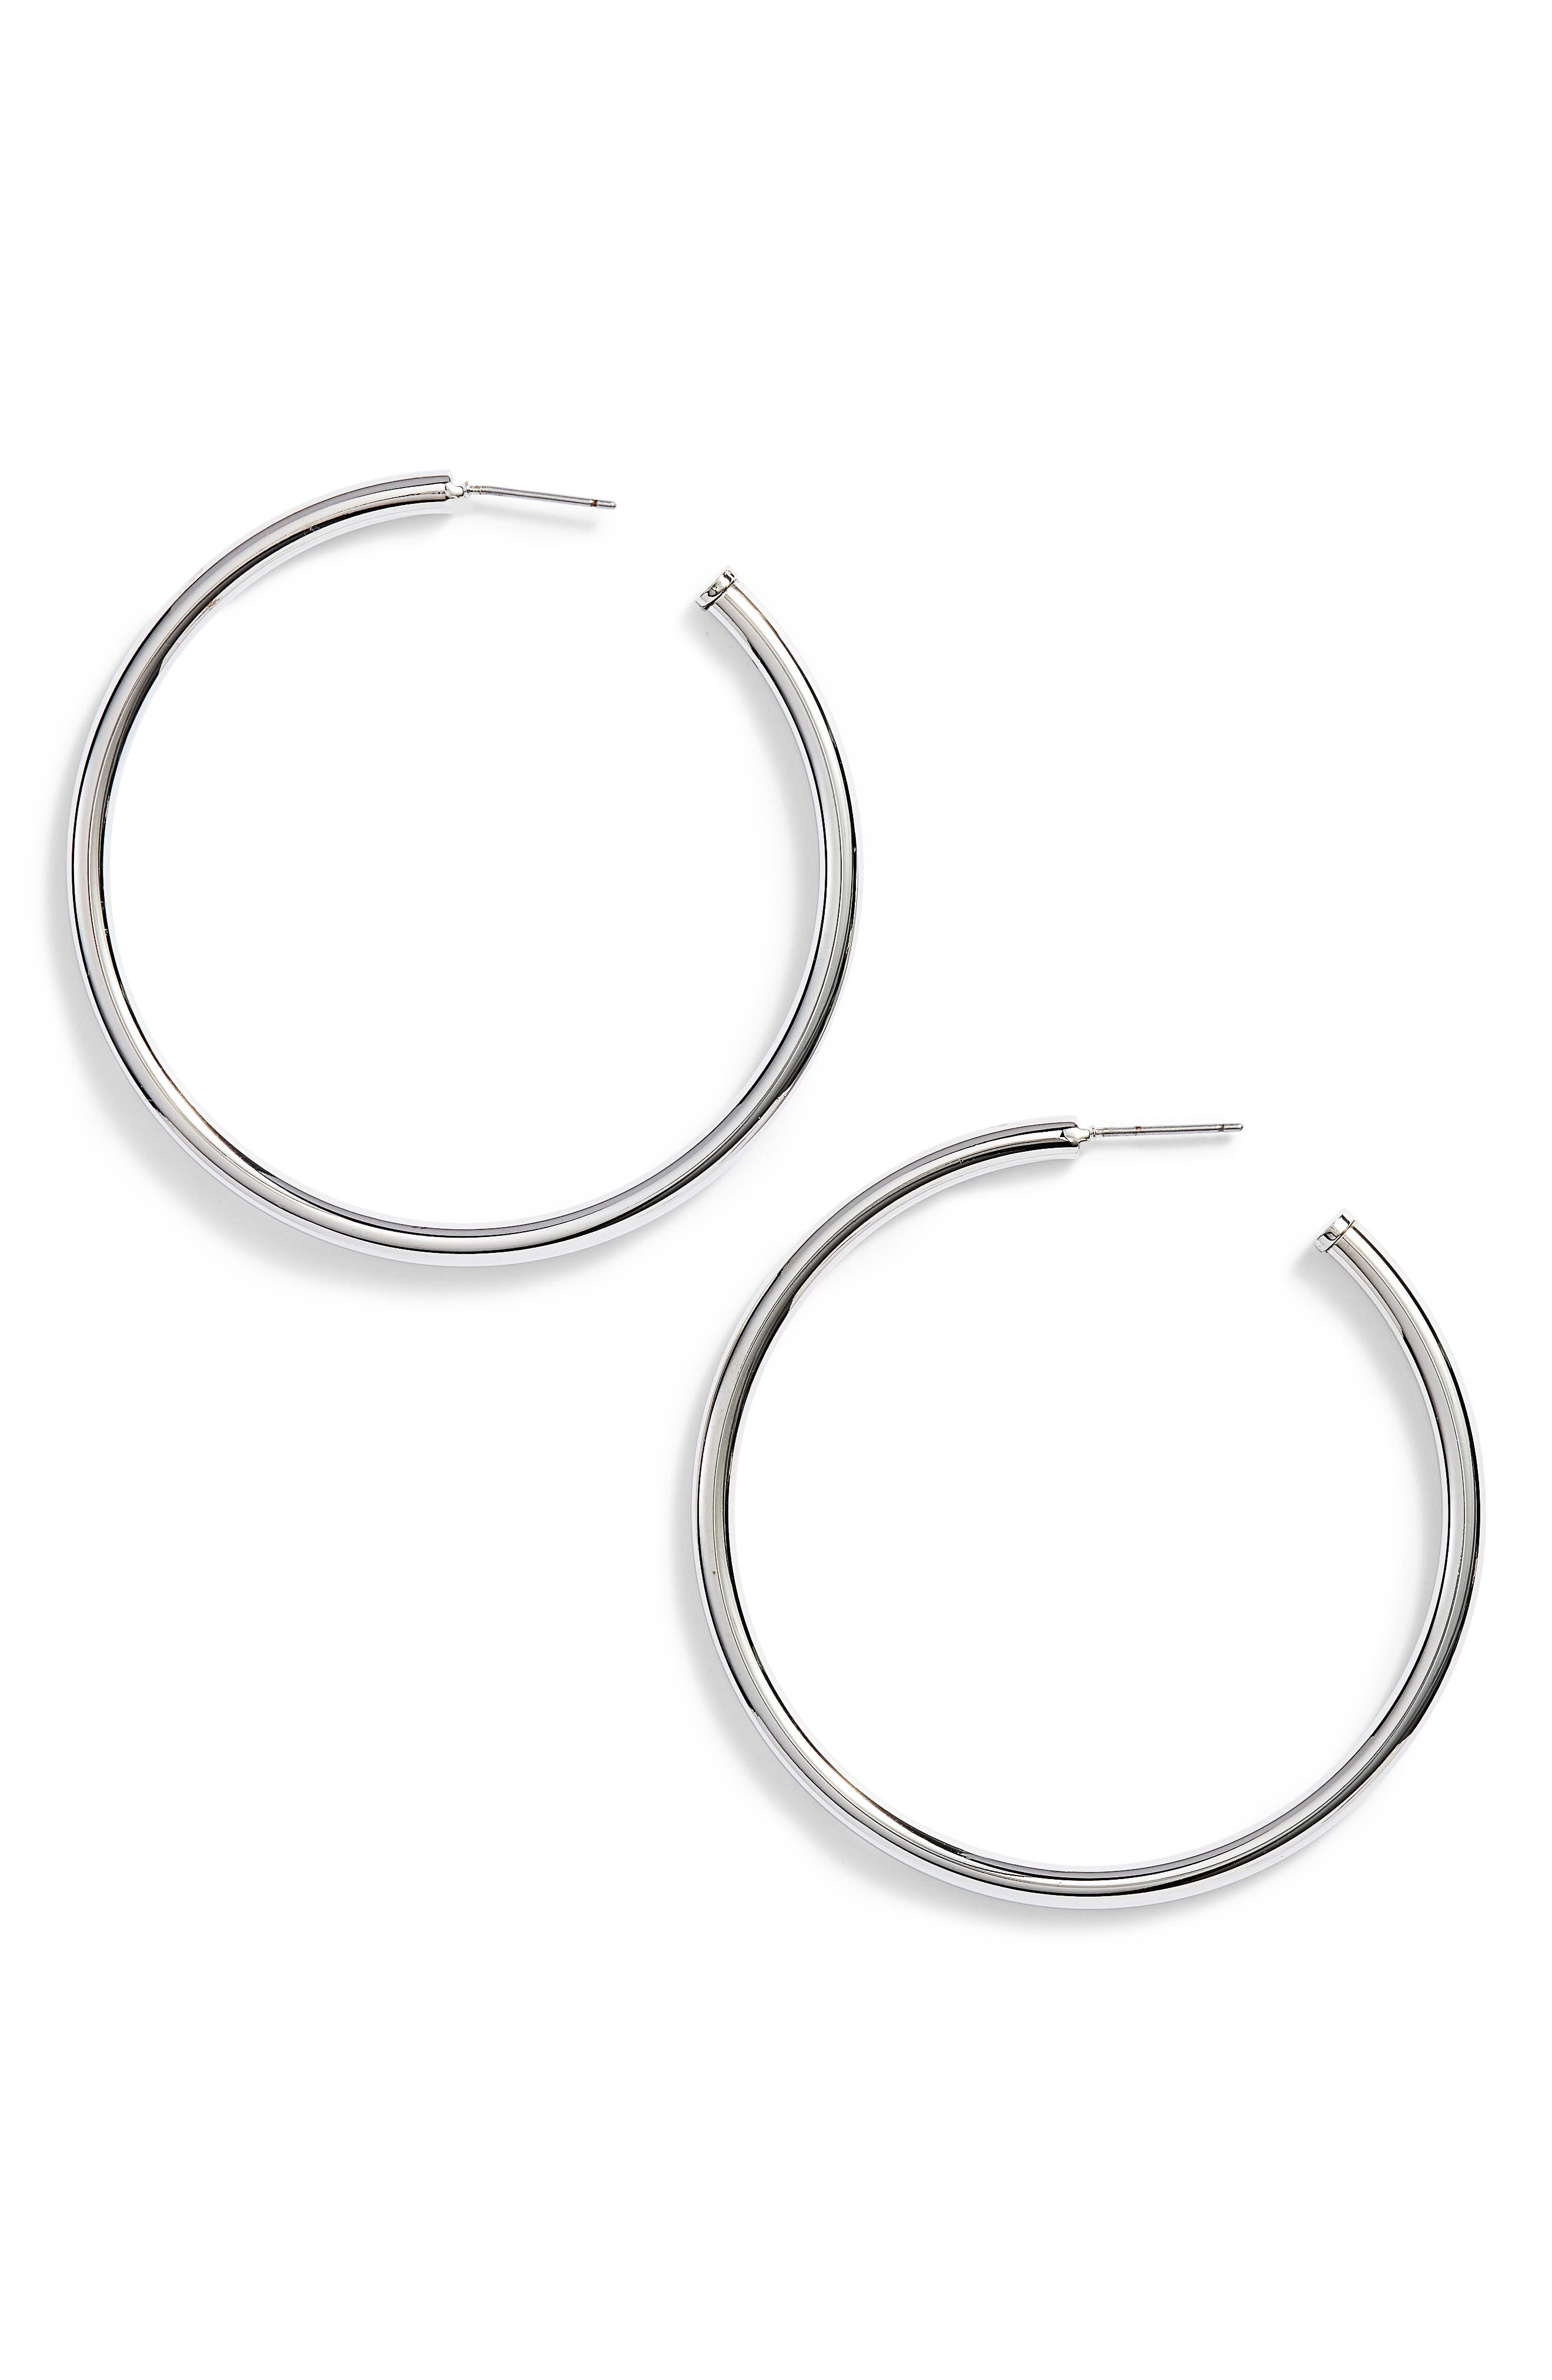 Rounded Tube Oversize Hoop Earrings,                         Main,                         color,